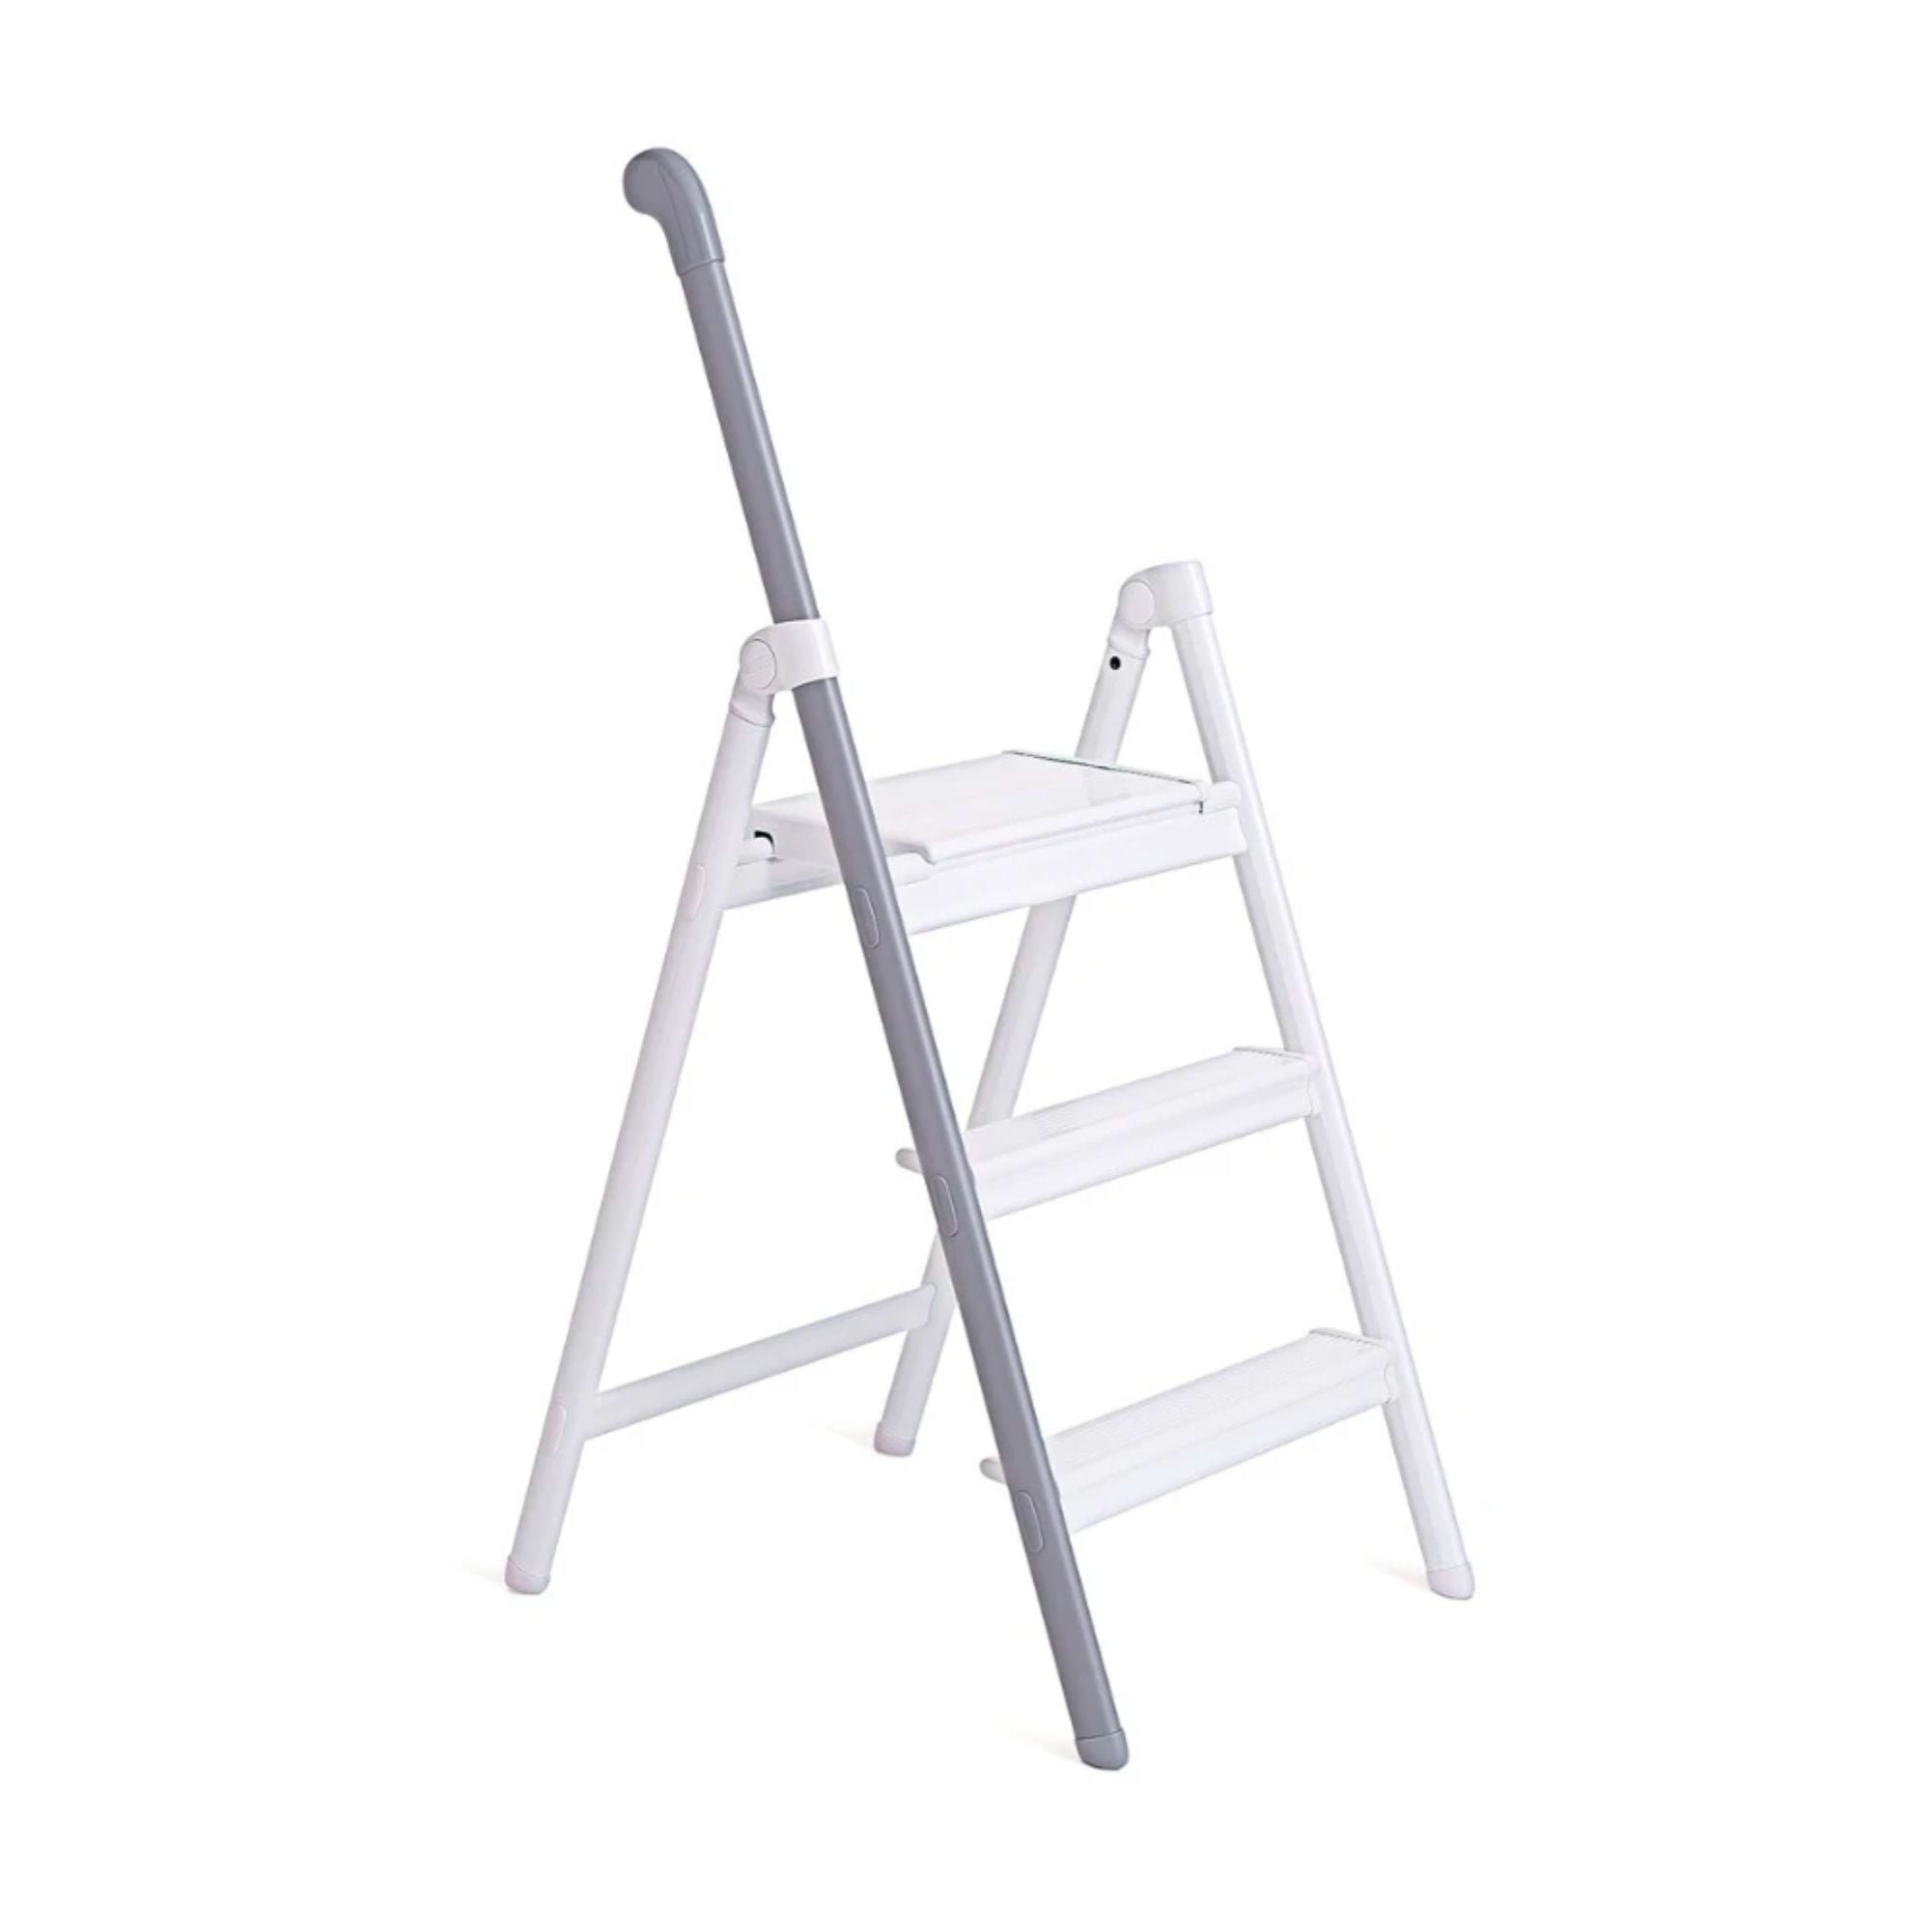 Hasegawa Handle step ladder 3 steps, grey